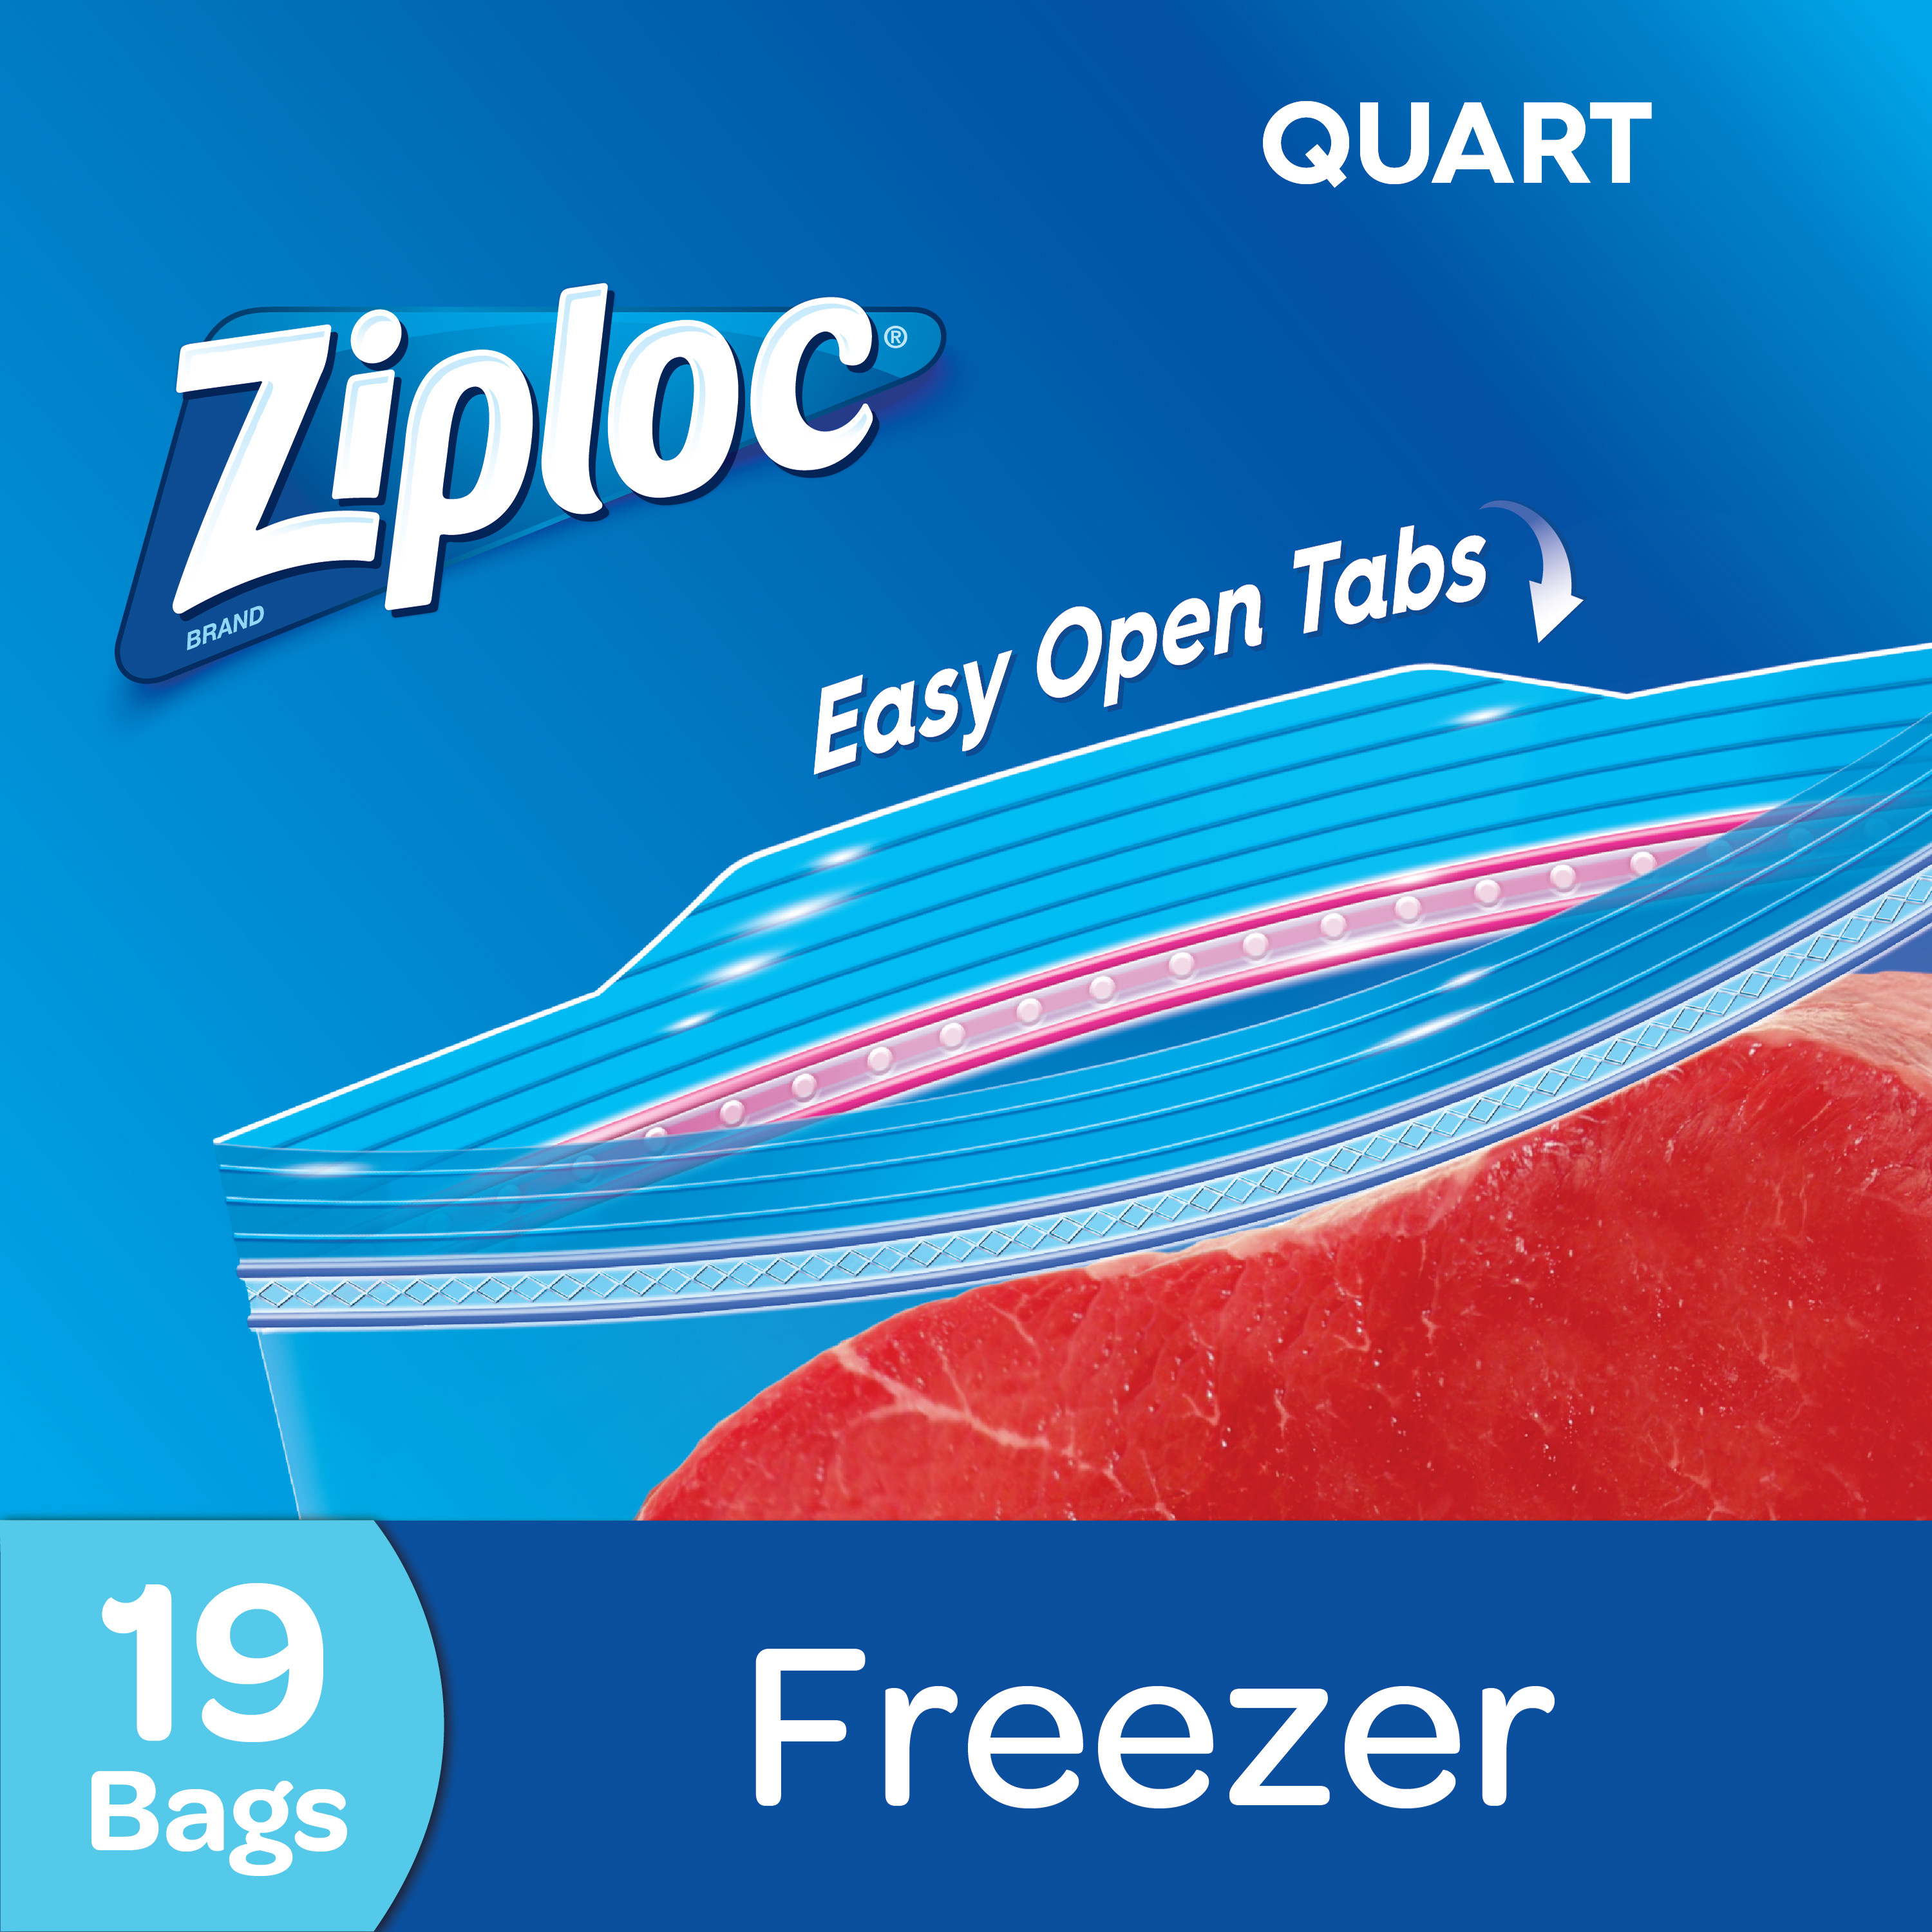 Ziploc Freezer Bags, Quart, 19 count